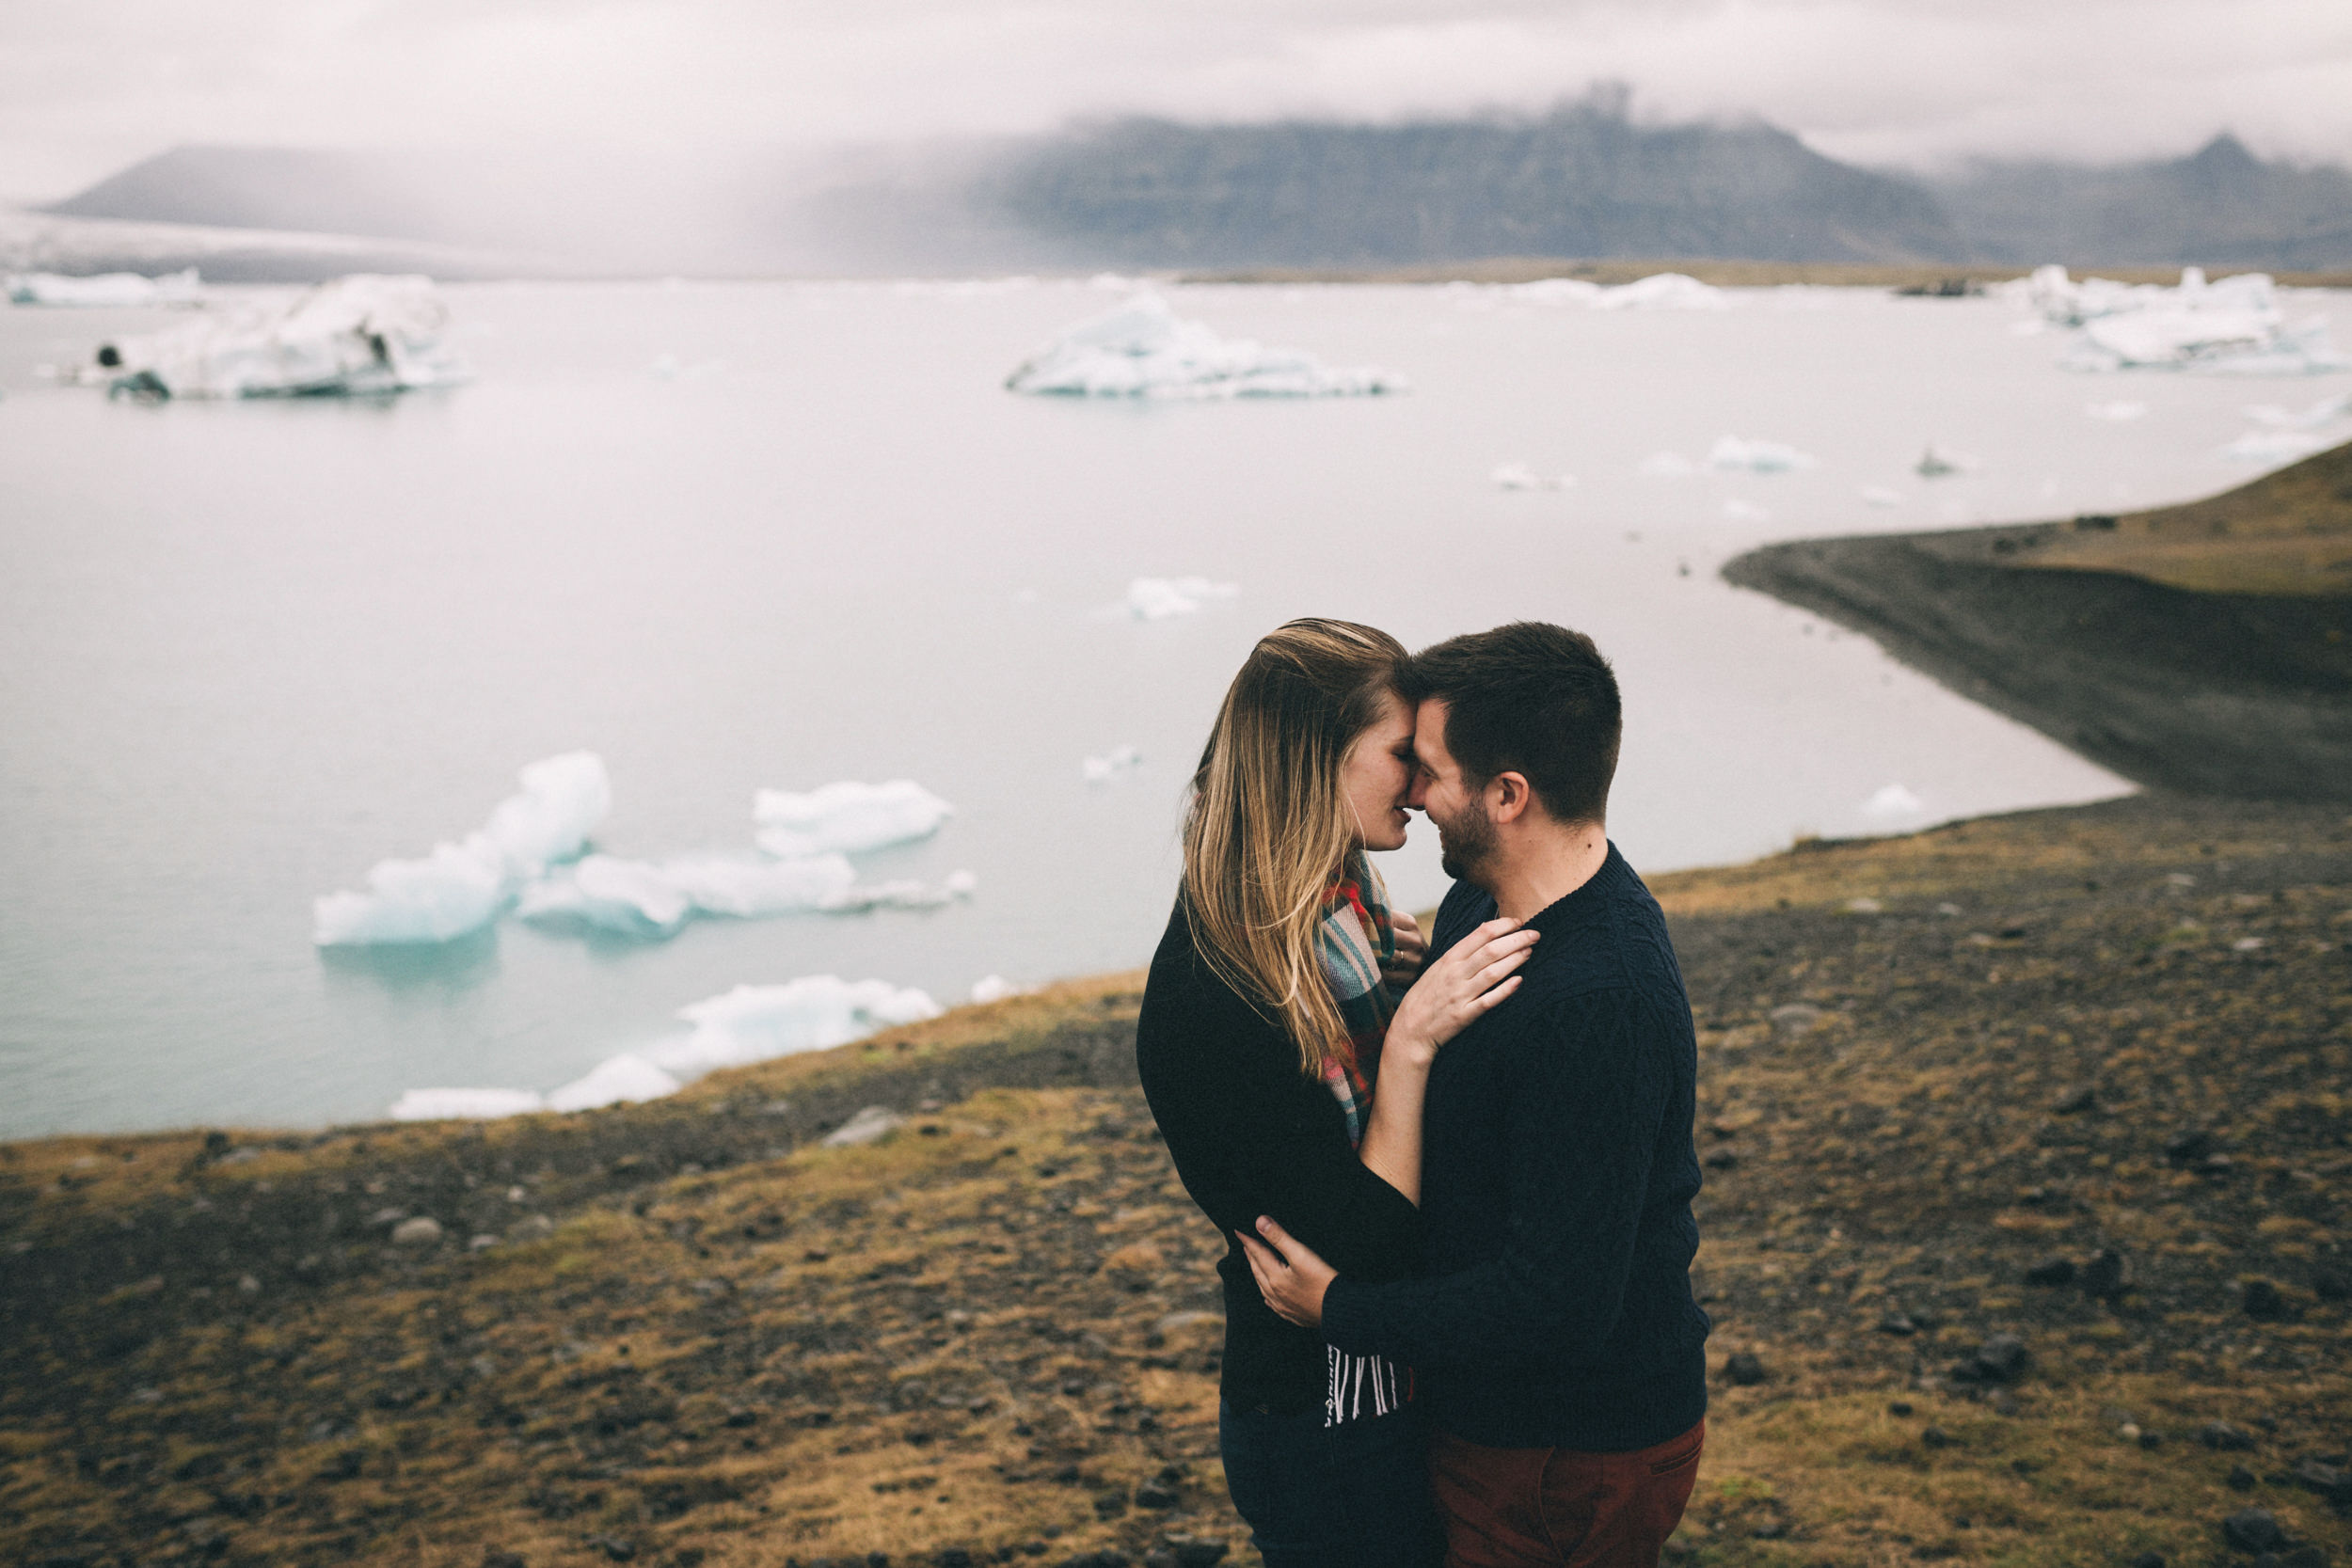 Sarah-Katherine-Davis-Photography-Iceland-Adventure-Elopement-Photographer-Louisville-Kentucky-Wedding-Photographer-Travel-Vik-Beach-Engagement-Session-Cozy-Iceland-South-Coast-235edit.jpg